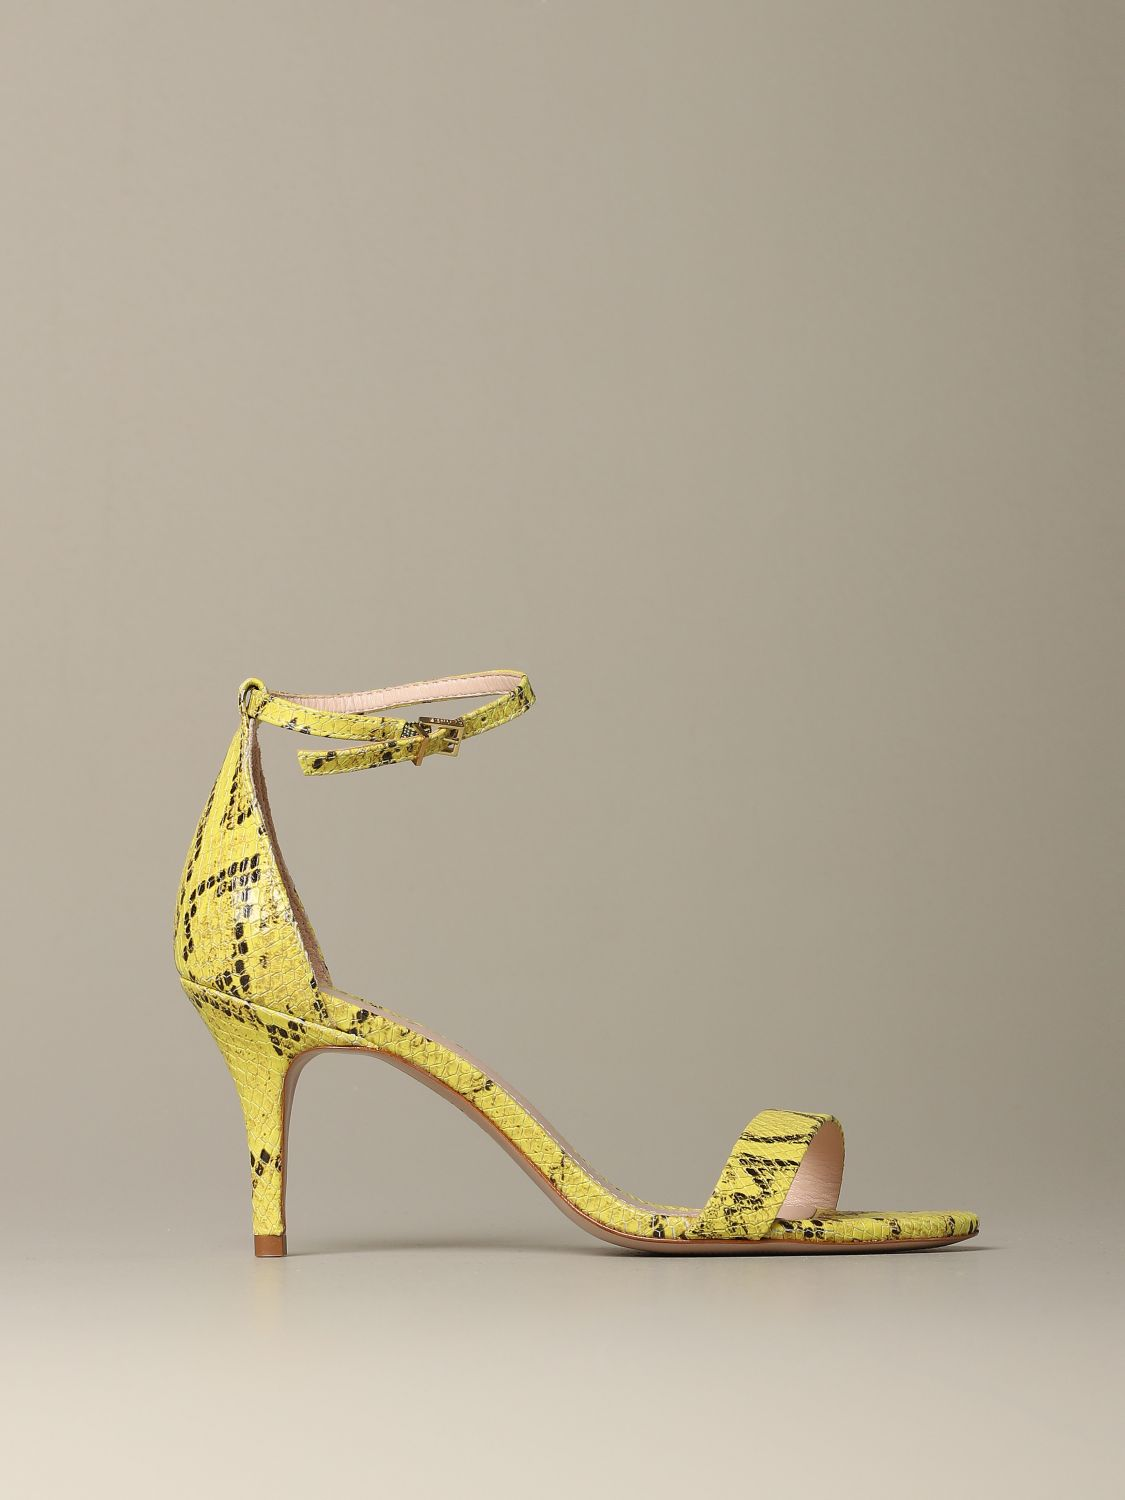 Heeled sandals Schutz: Shoes women Schutz yellow 1